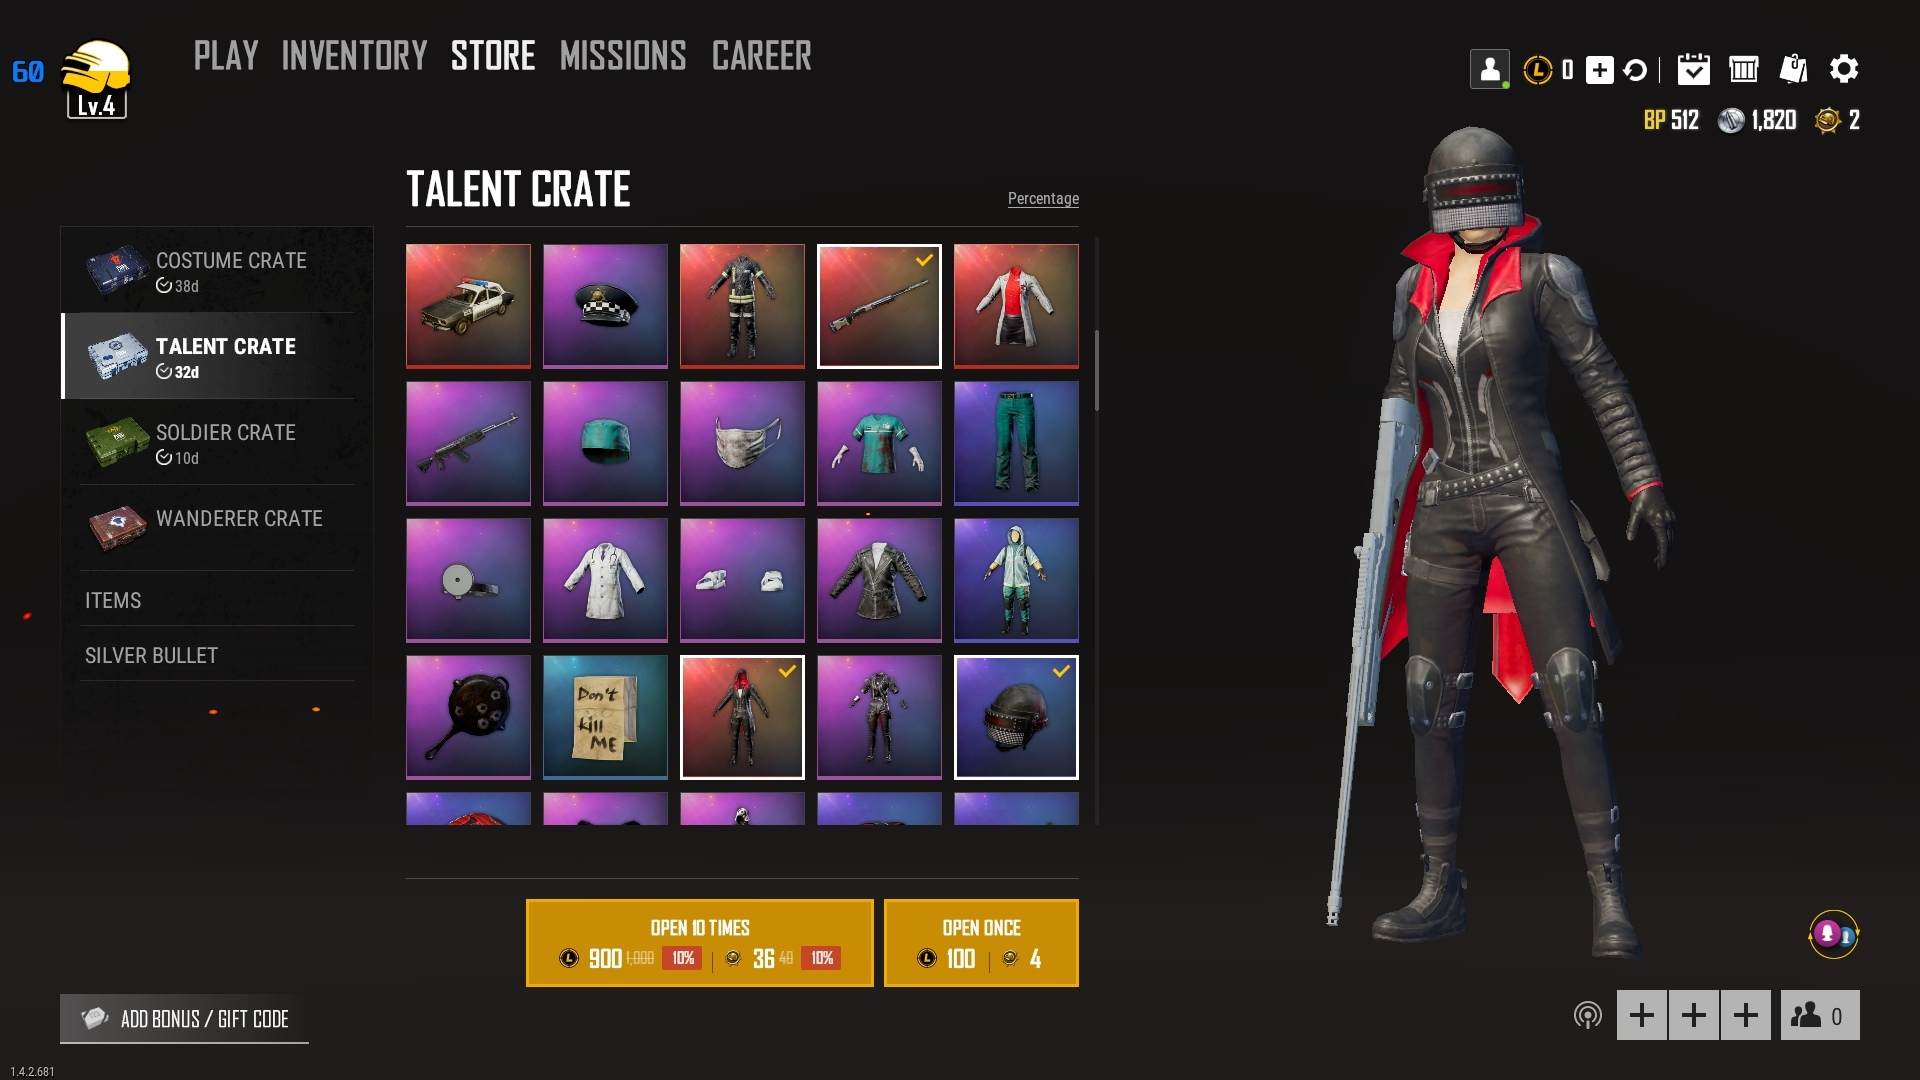 Содержимое сундуков Costume Crate, Talent Crate и Soldier Crate в PUBG LITE